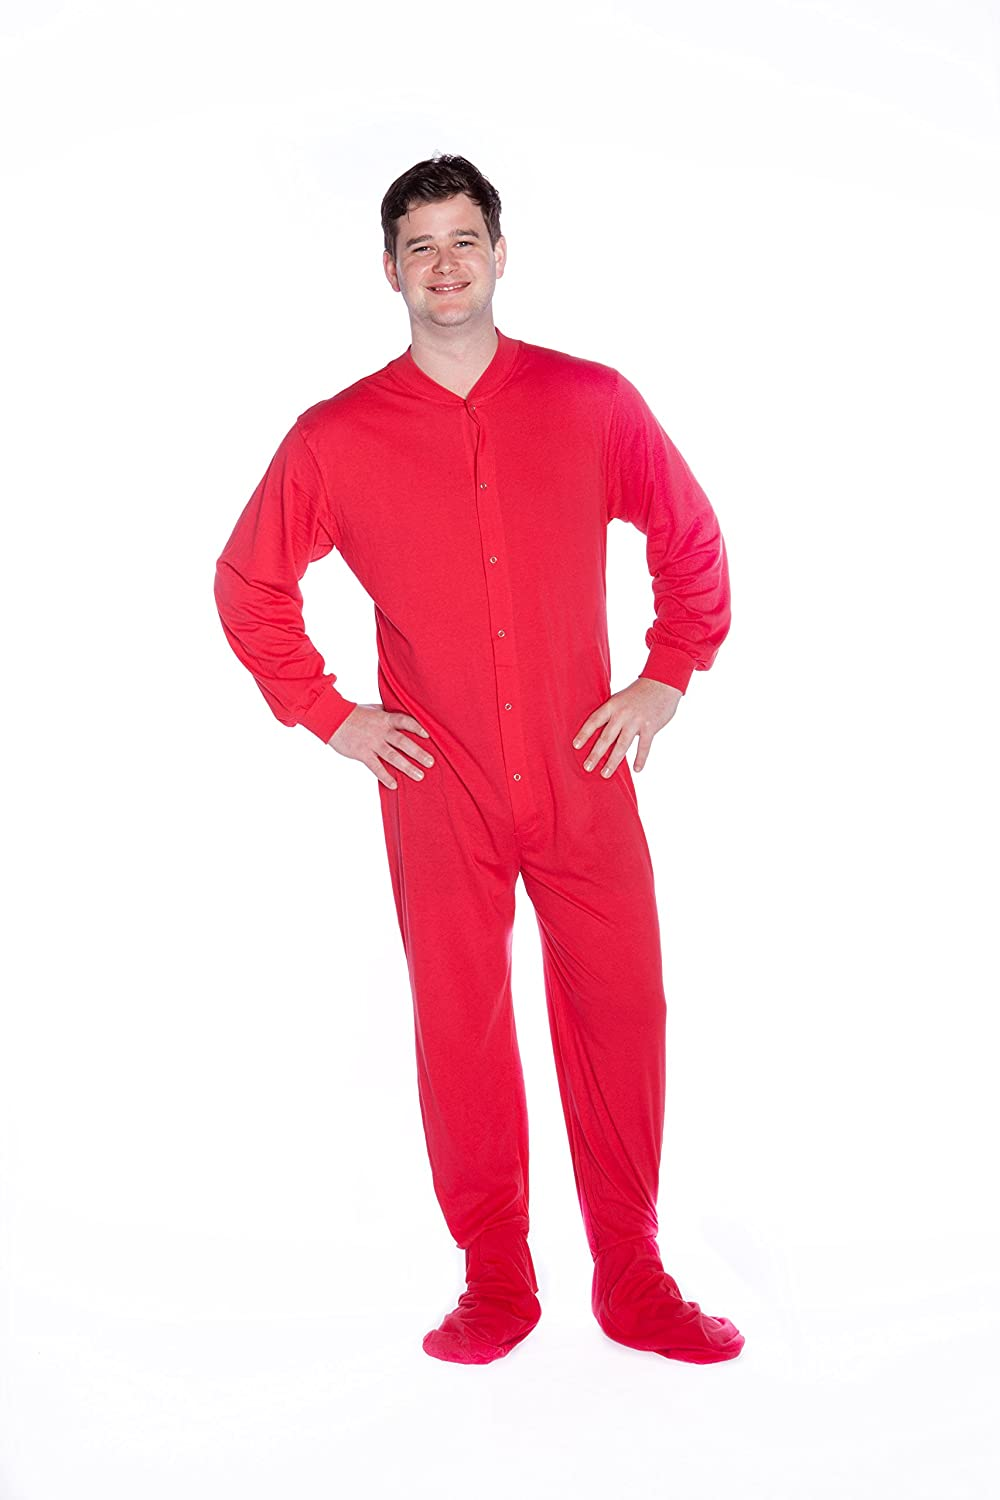 Red Plaid Fleece Adult Footed Pajamas with Drop Seat and Long Night Cap $ Pink Leopard Adult Footed Pajamas with Drop Seat and Long Night Cap.